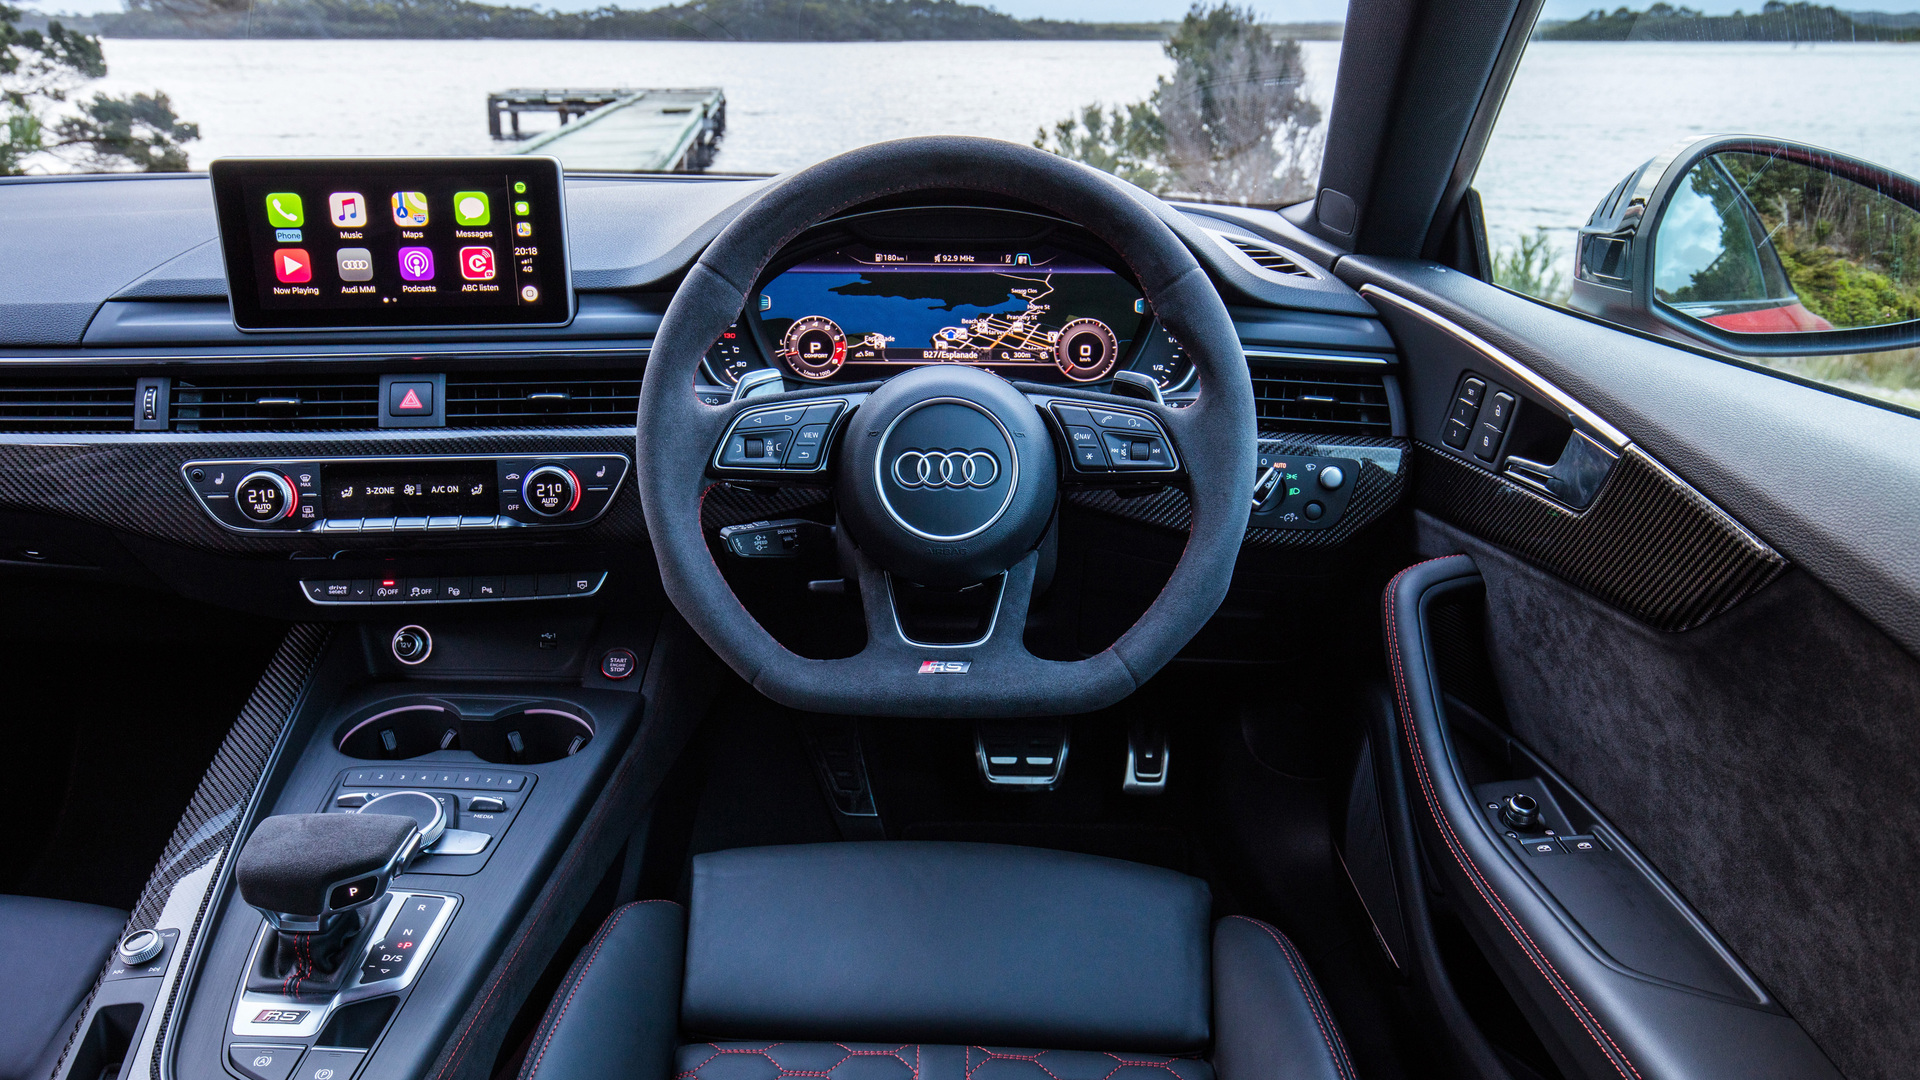 1920x1080 Audi Rs5 Coupe Interior 4k Laptop Full HD 1080P